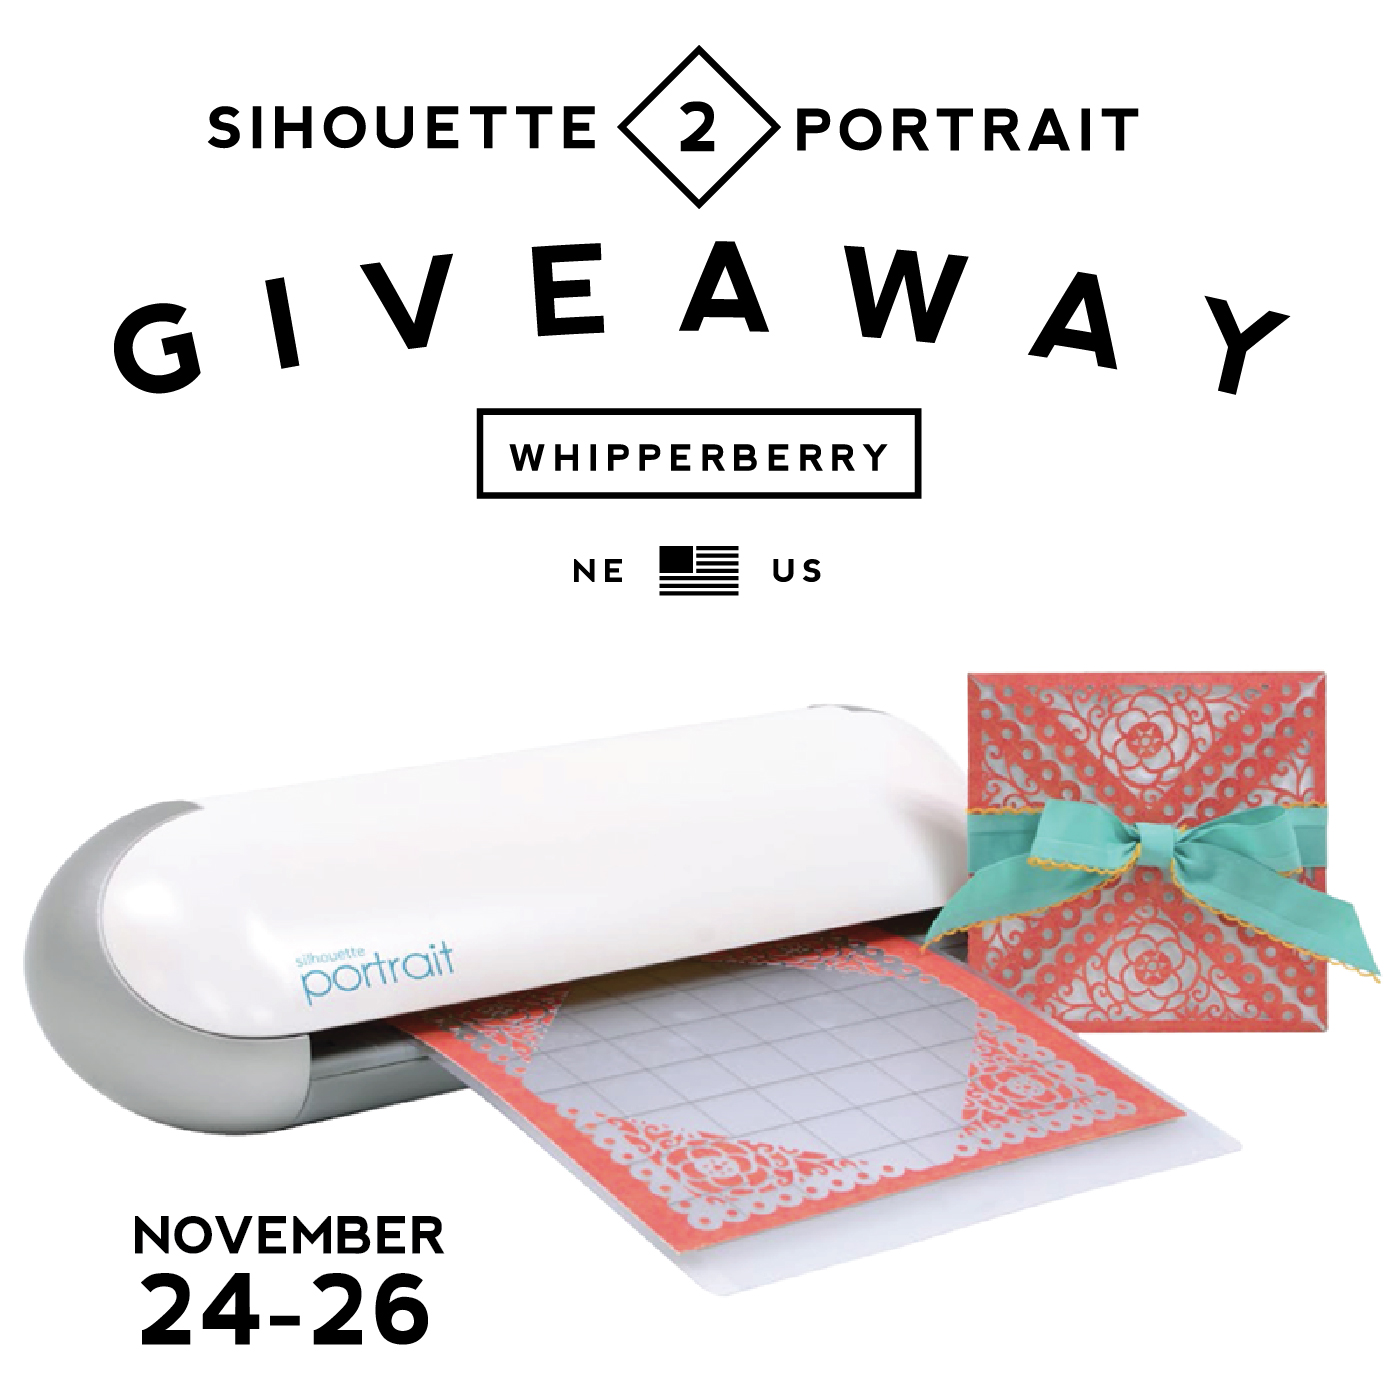 My Favorite Crafting Tool + Silhouette Portrait GIVEAWAY